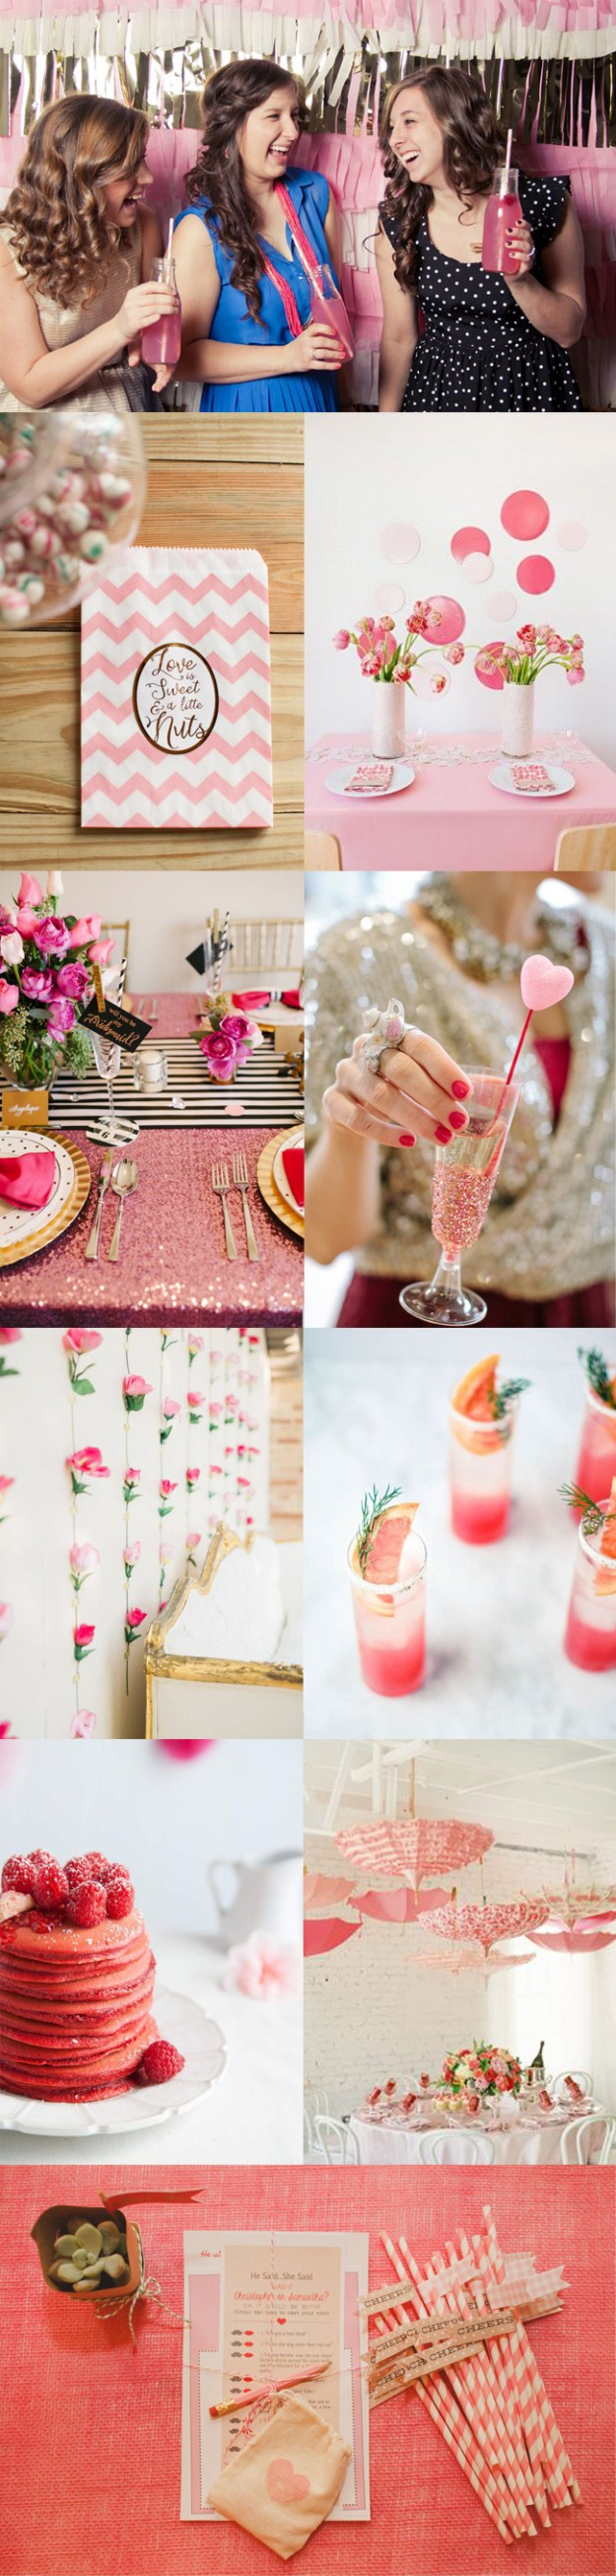 Pink bridal shower inspiration board